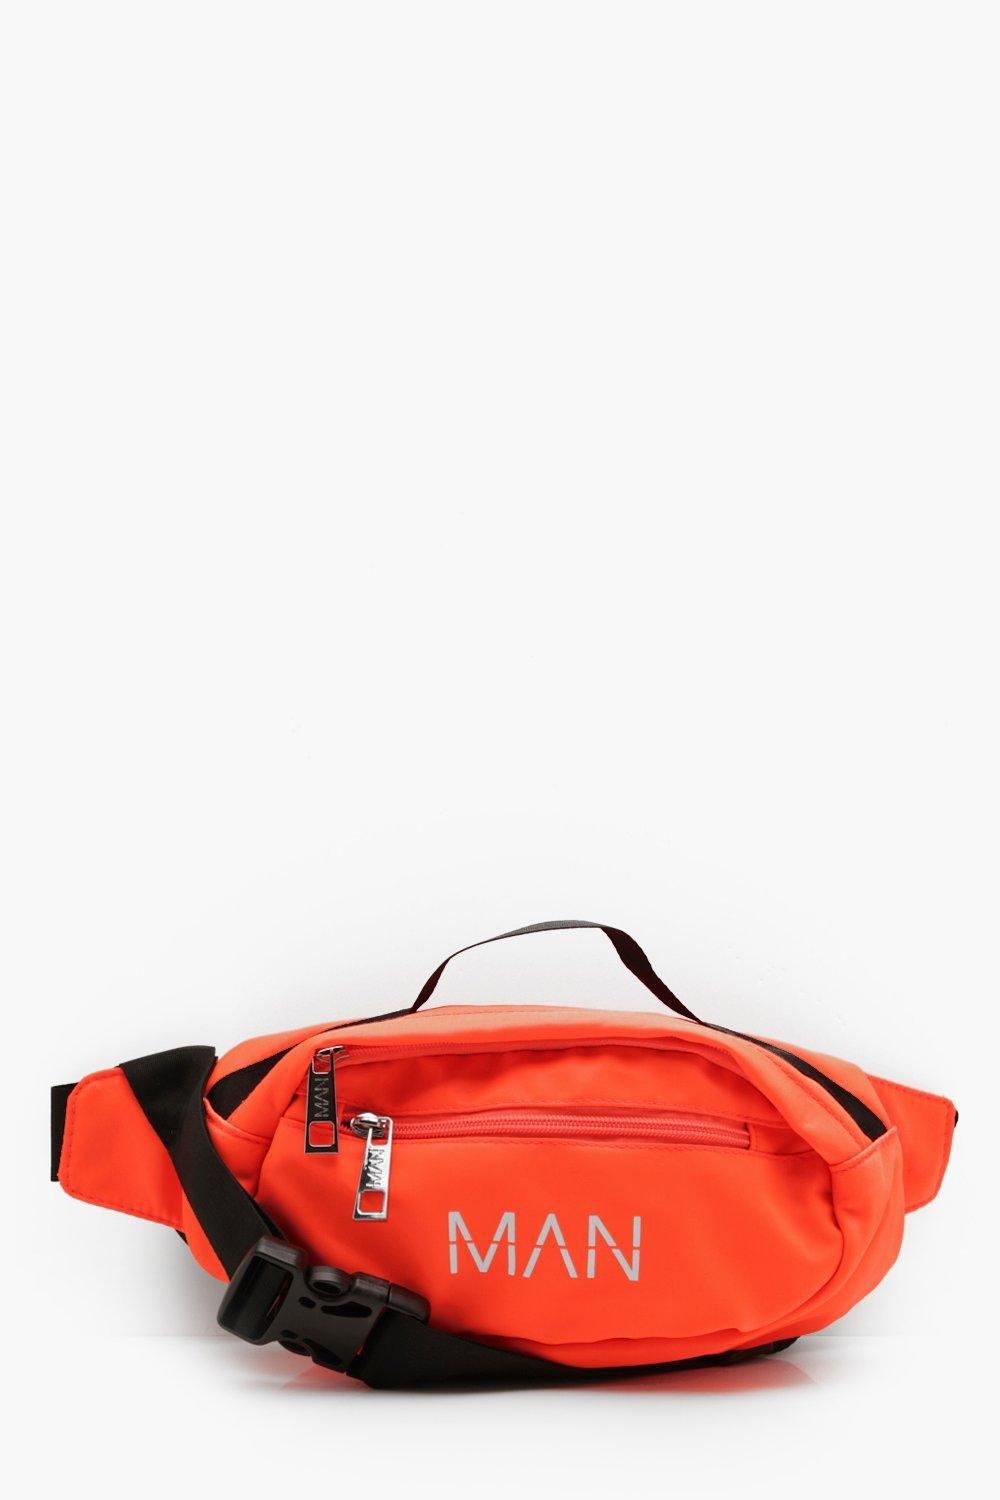 931177f42d Boohoo Neon Man Branded Bumbag in Orange for Men - Lyst